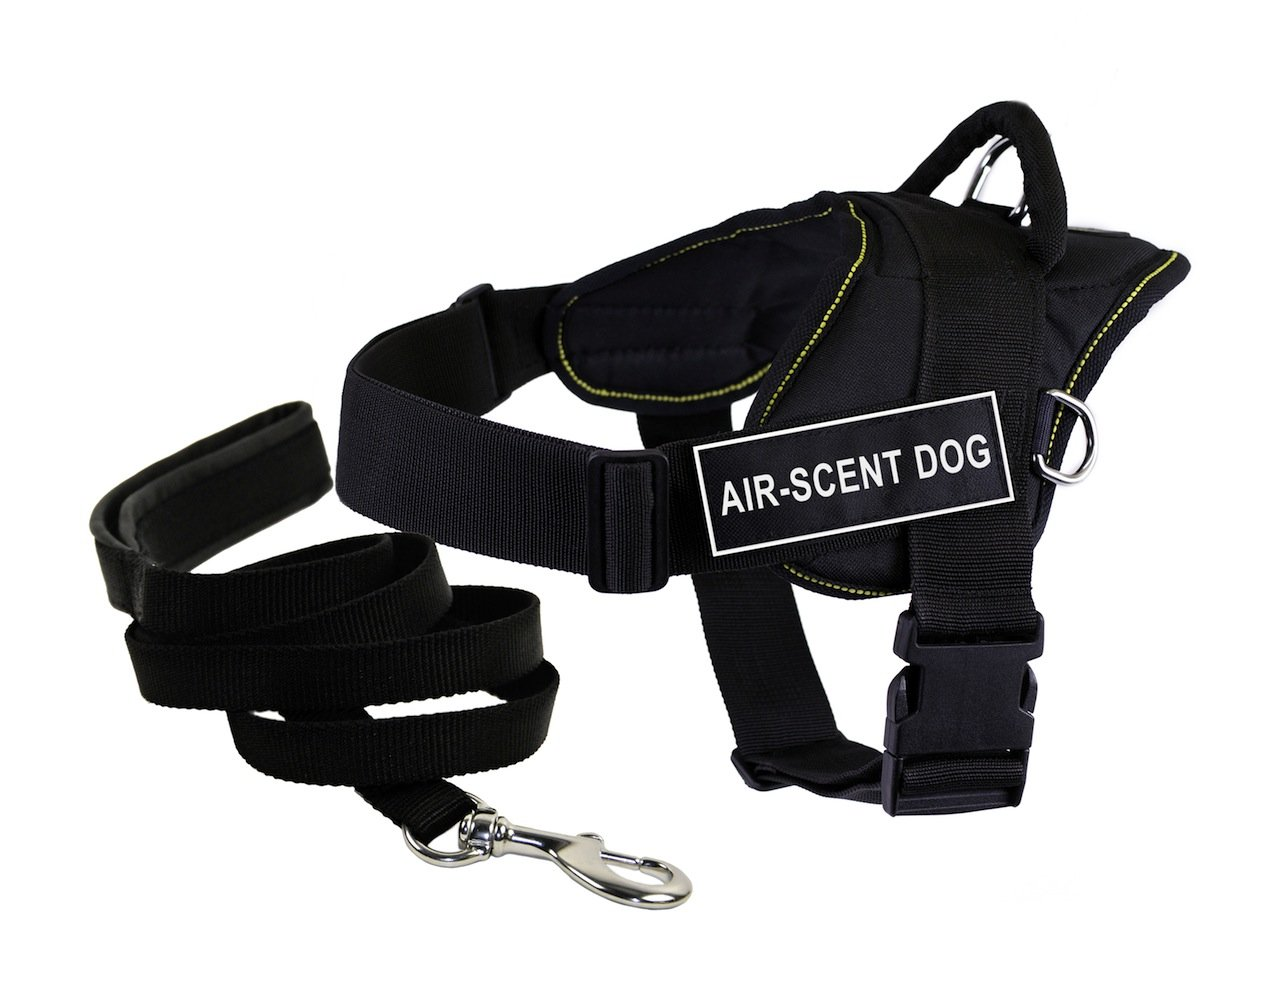 Dean & Tyler's DT Fun AIR-SCENT DOG Harness, XX-Small, with 6 ft Padded Puppy Leash.